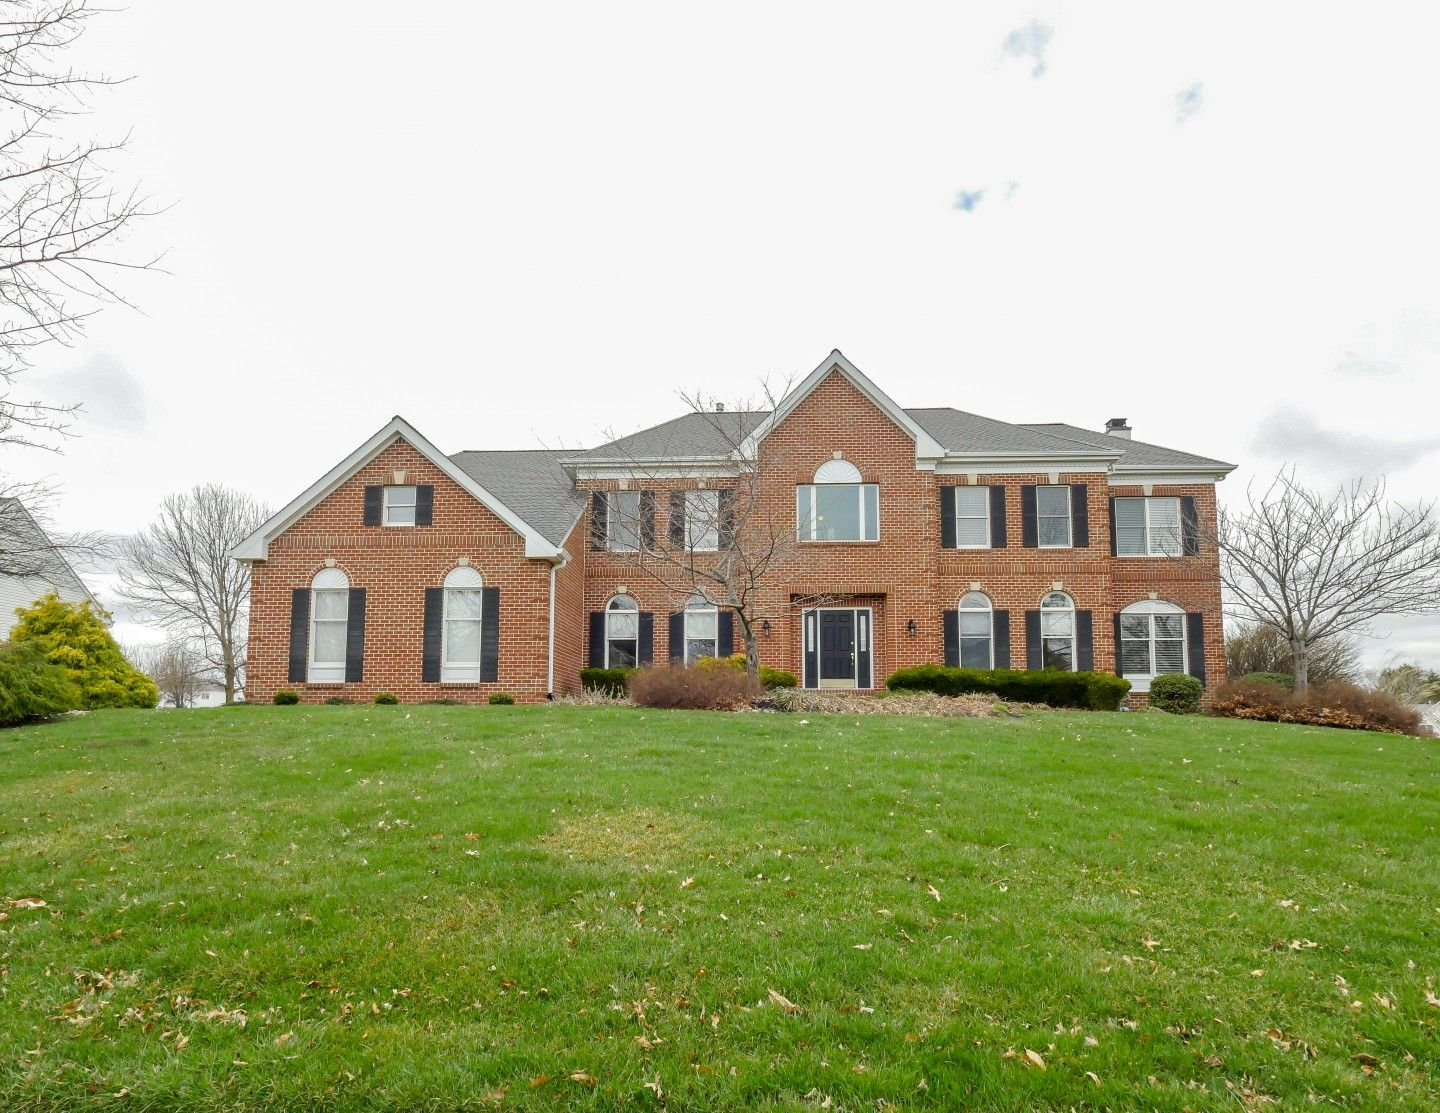 Amazing 5 Bed 5 Ba With Huge Patio Fll Gourmet Kitchen More 46 Addis Churchville Pa 18966 Larry Lisa Minsk Real Estate Video Real Estate Find Real Estate